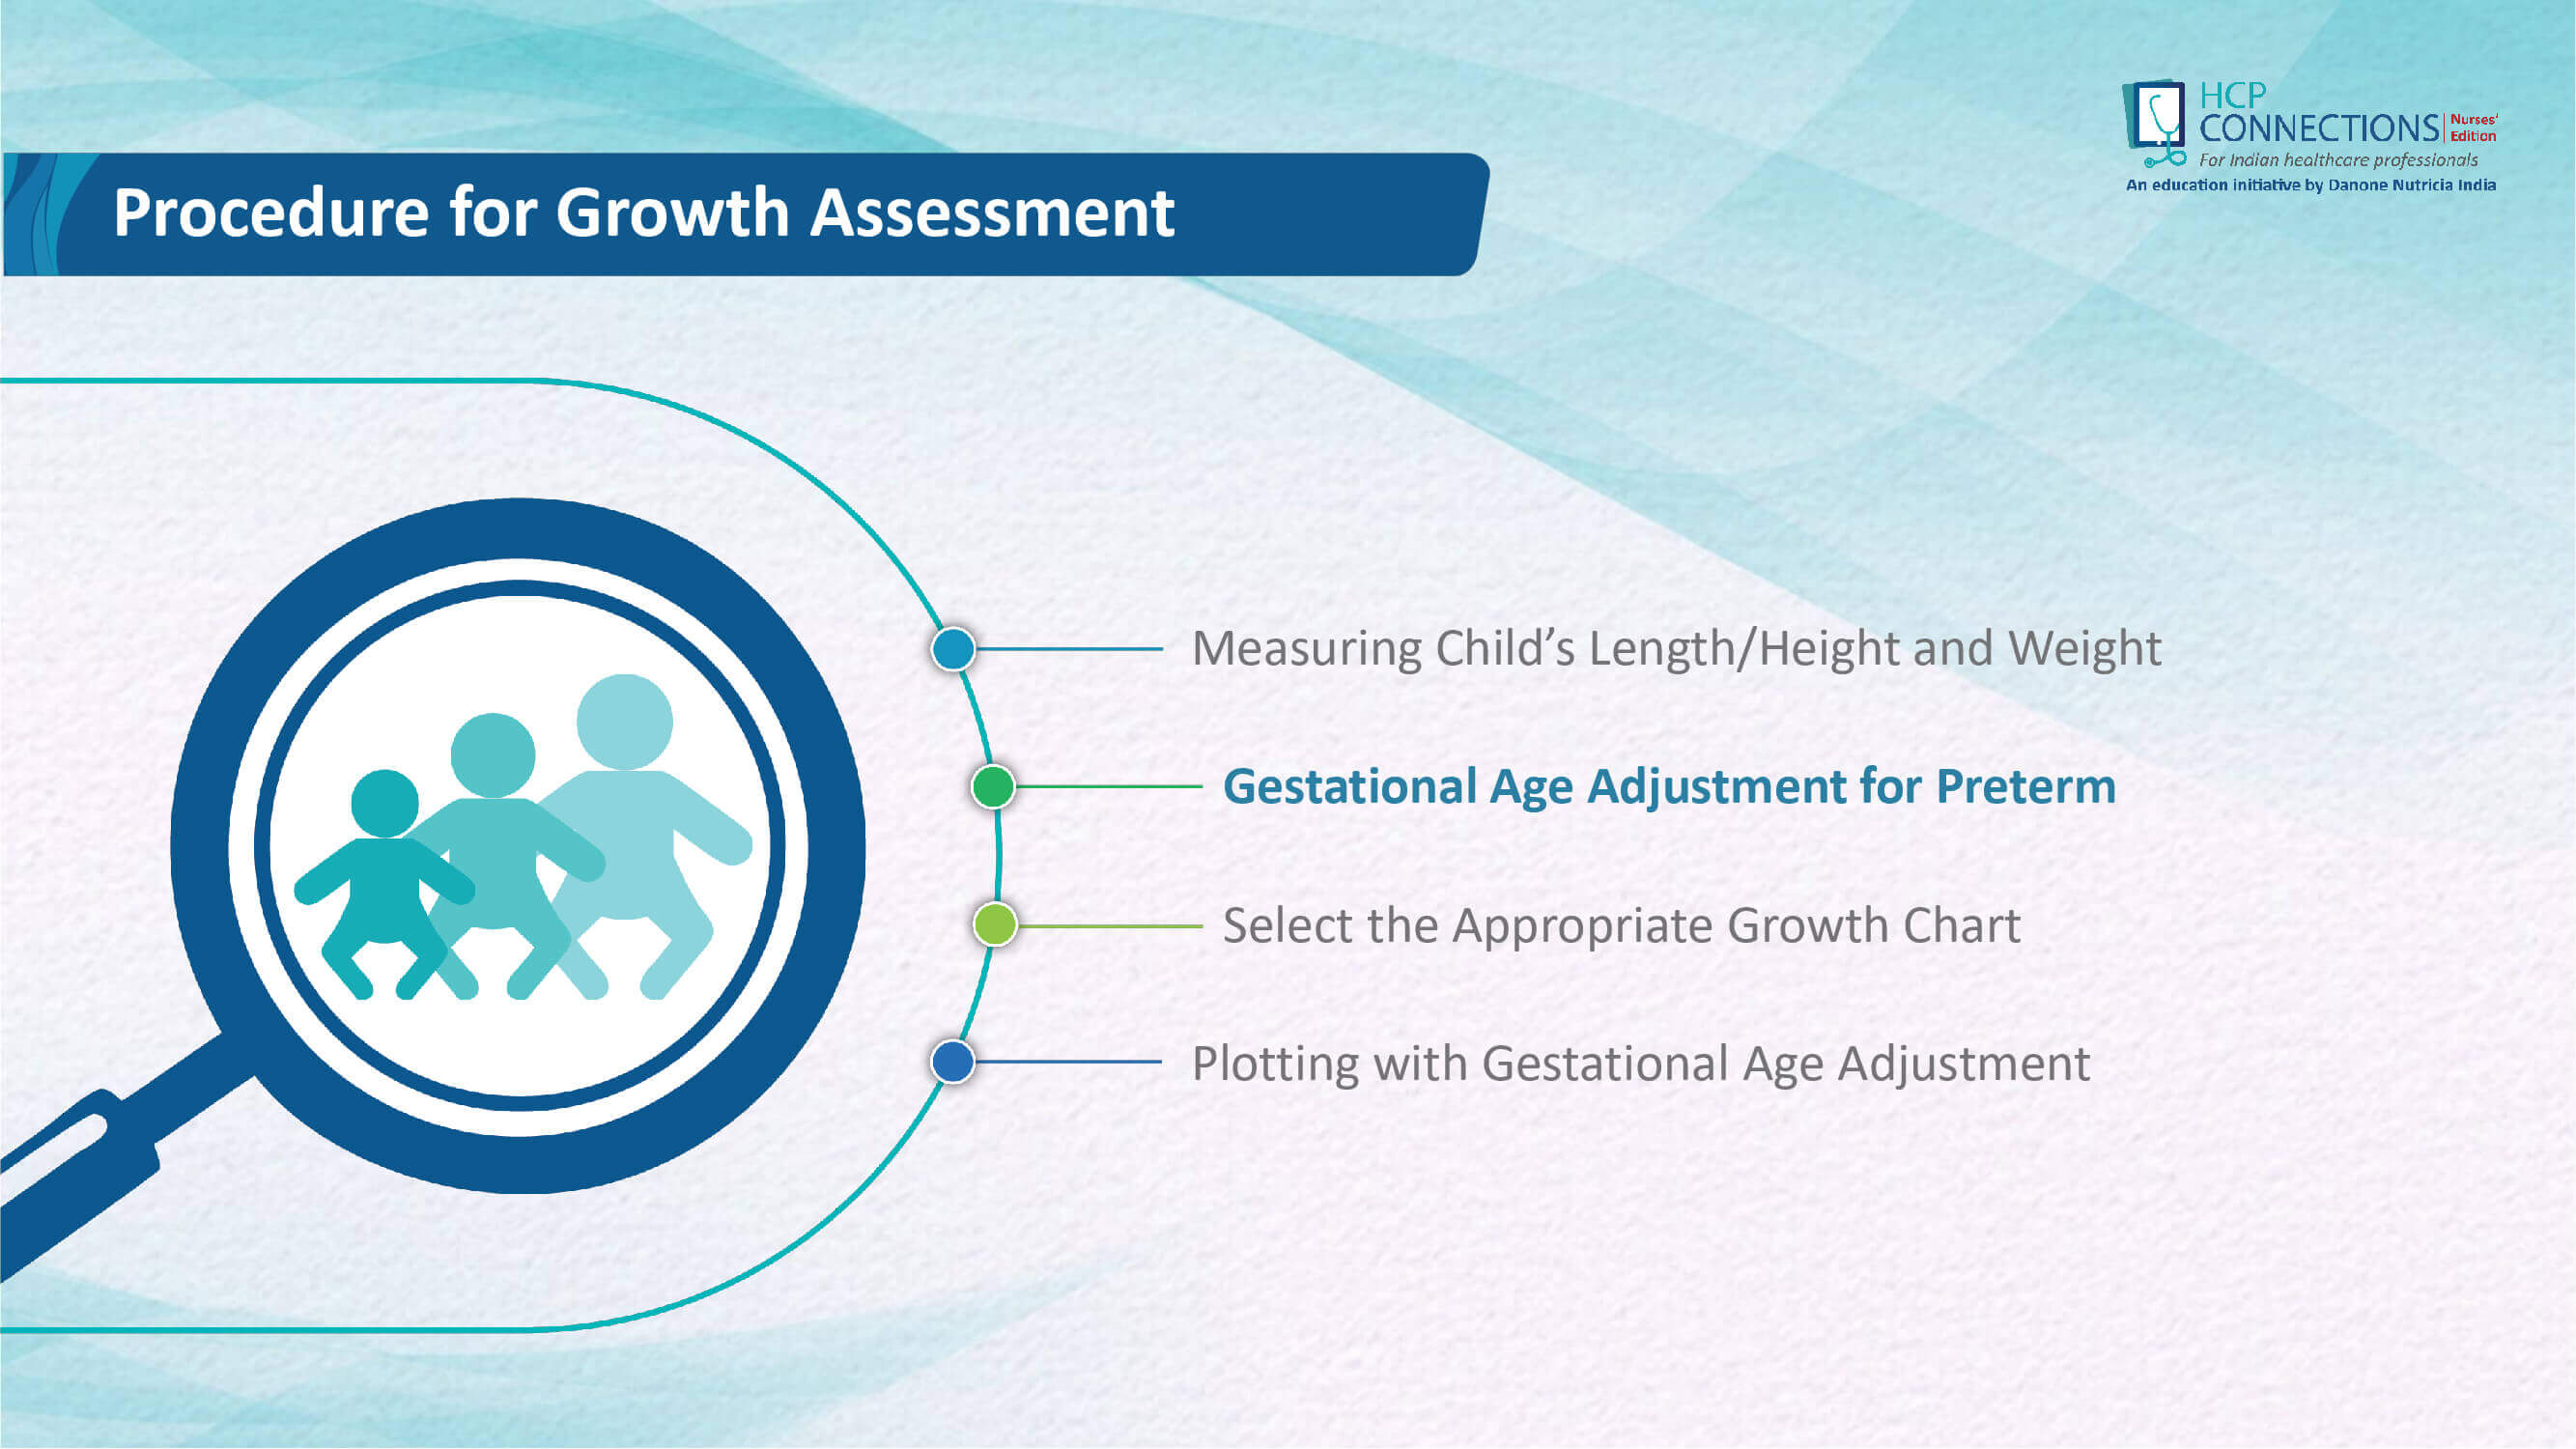 Growth assessment in Preterm infants slide 18